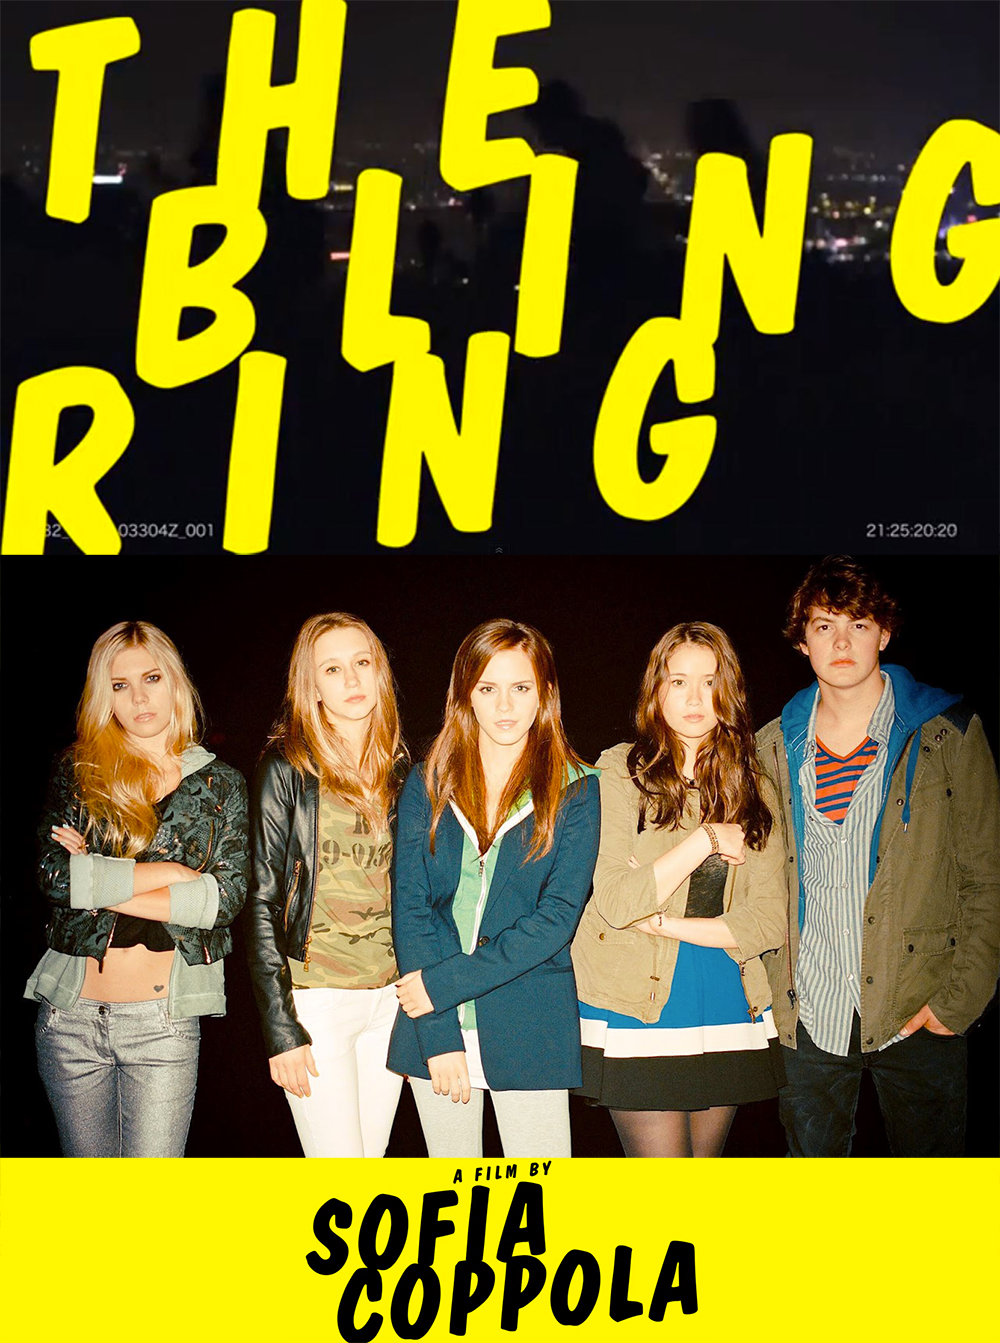 a review of the bling ring a suspenseful film Movie review: the bling ring sofia coppola's the bling ring is one of my favorite movies of the year set in 2009 and based on actual events, it tells the tale of a group of socal teens obsessed with celebrities and their bling, who end up stealing millions from the homes of paris hilton, lindsay lohan, audrina patridge, orlando bloom, etc.